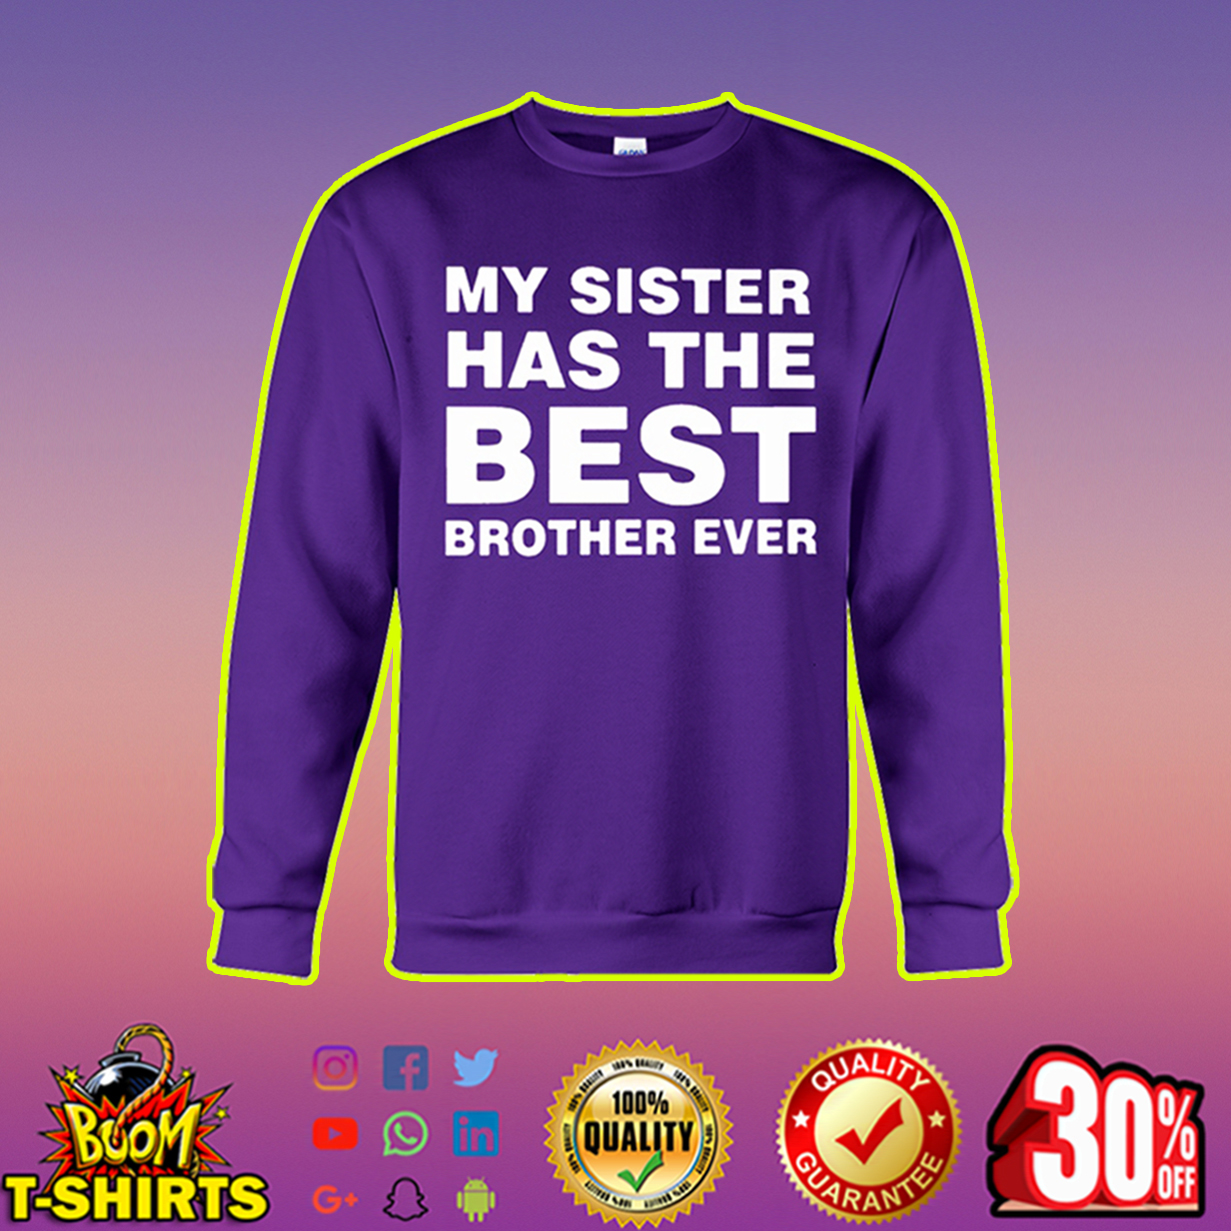 My sister has the best brother ever sweatshirt